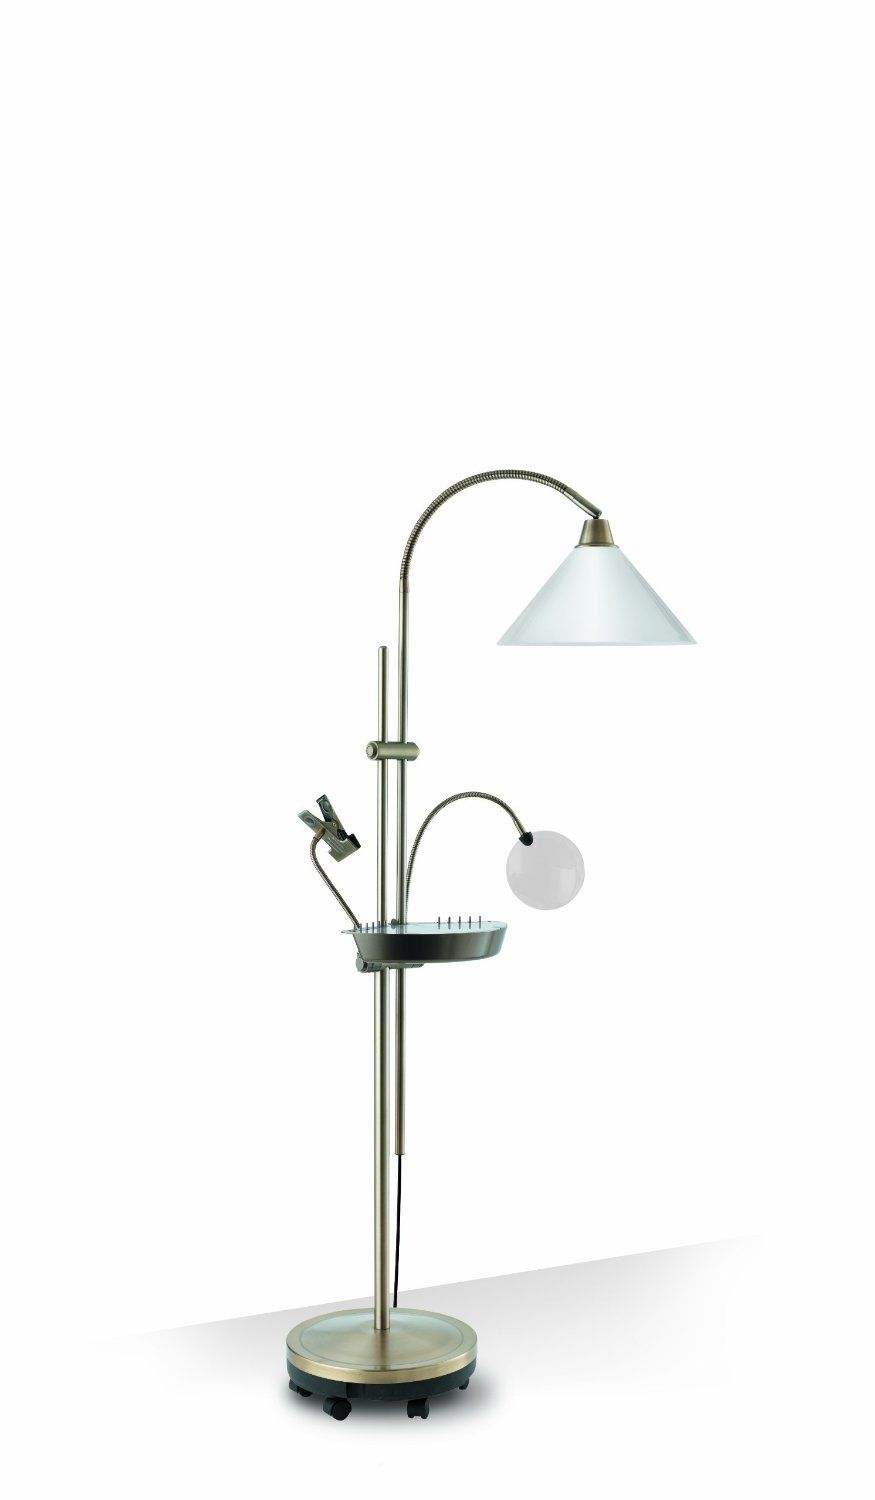 Daylight ultimate floorstanding lamp time to get a little